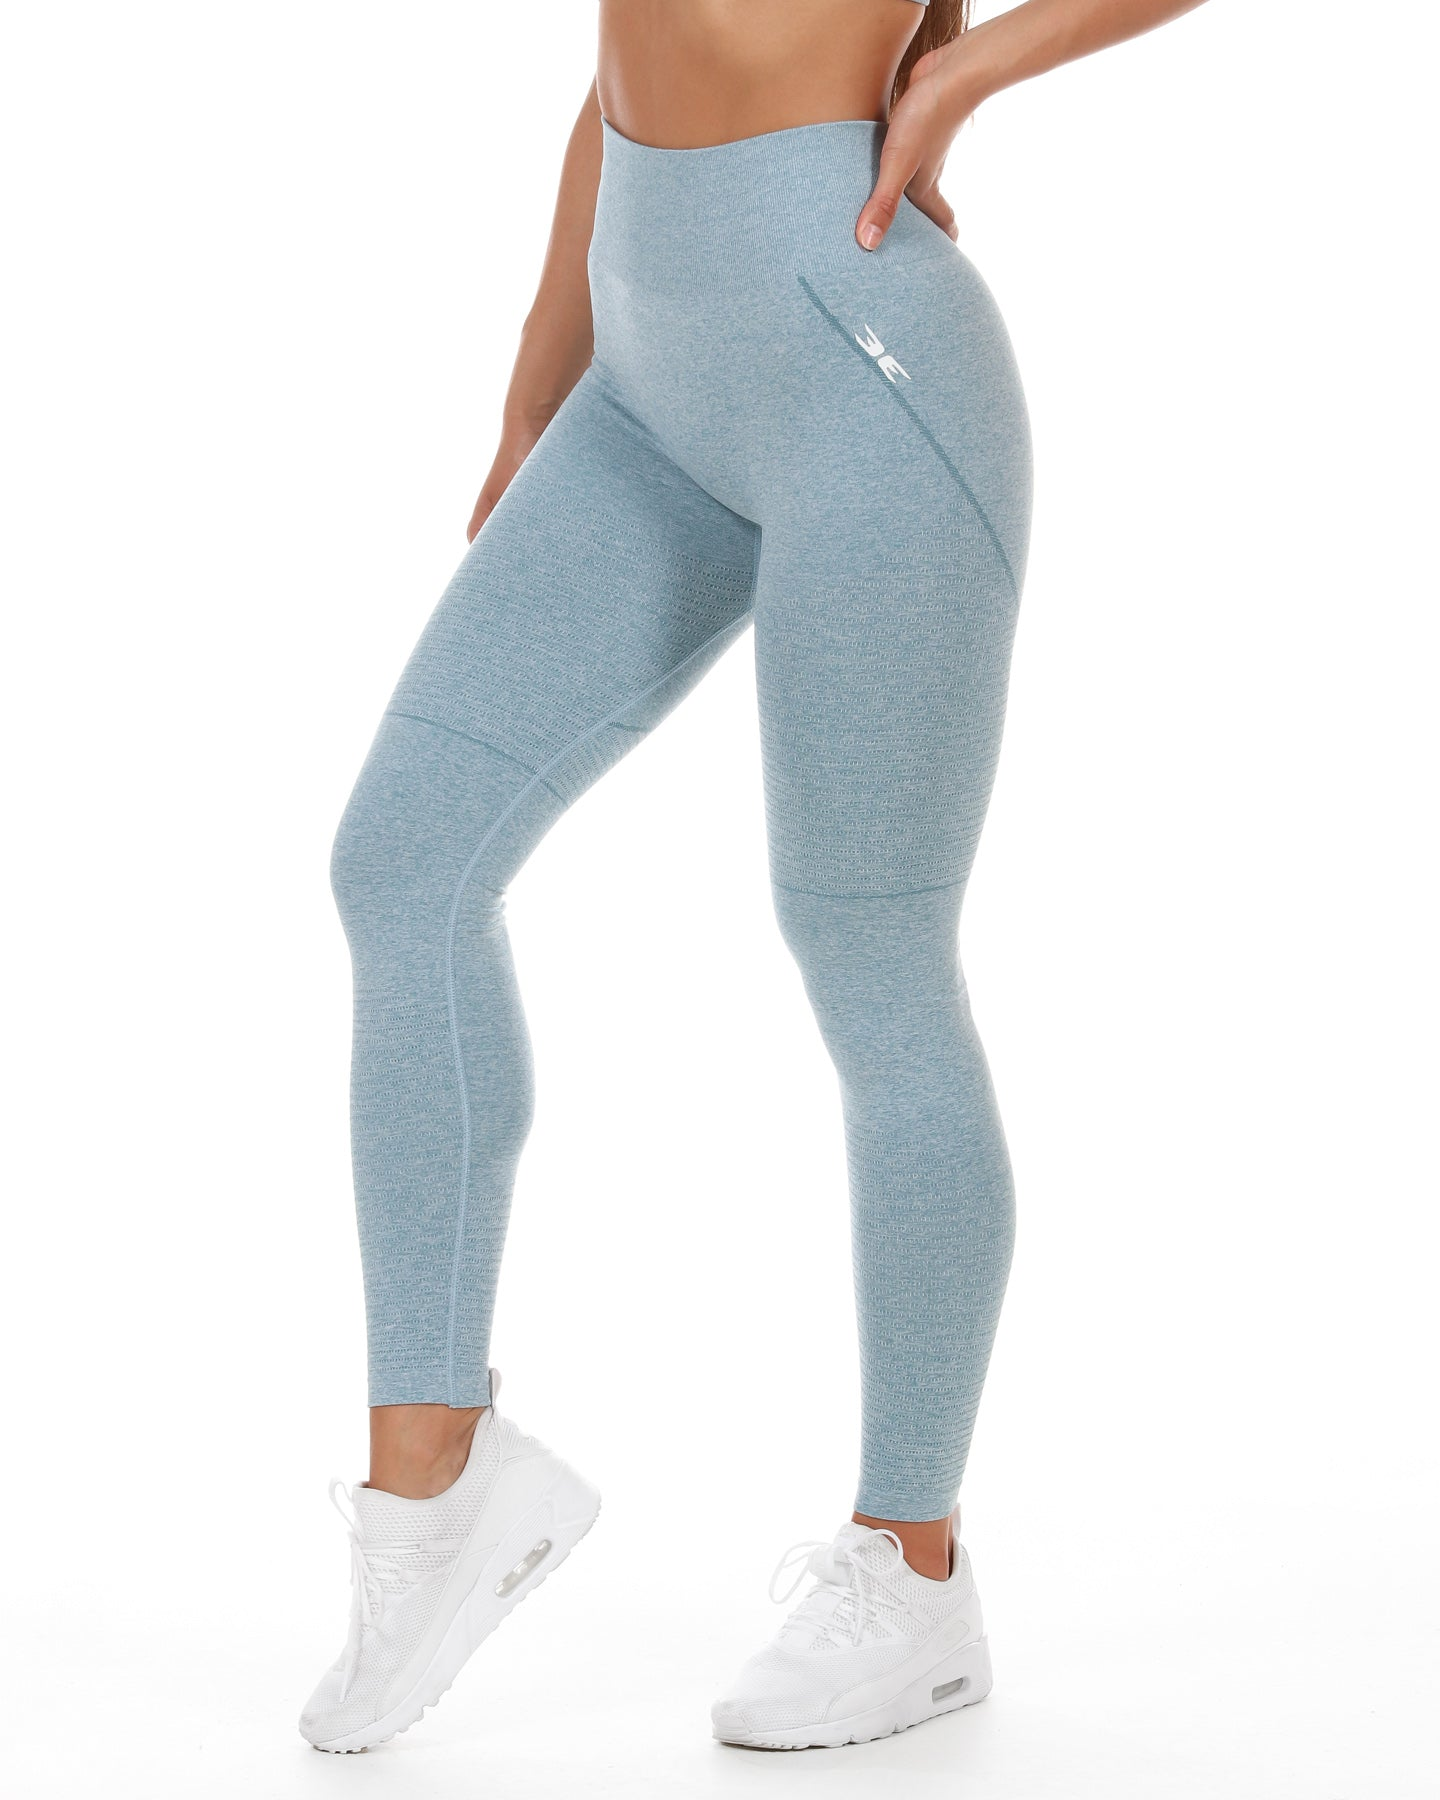 Elite Seamless Leggings - Dusty Teal